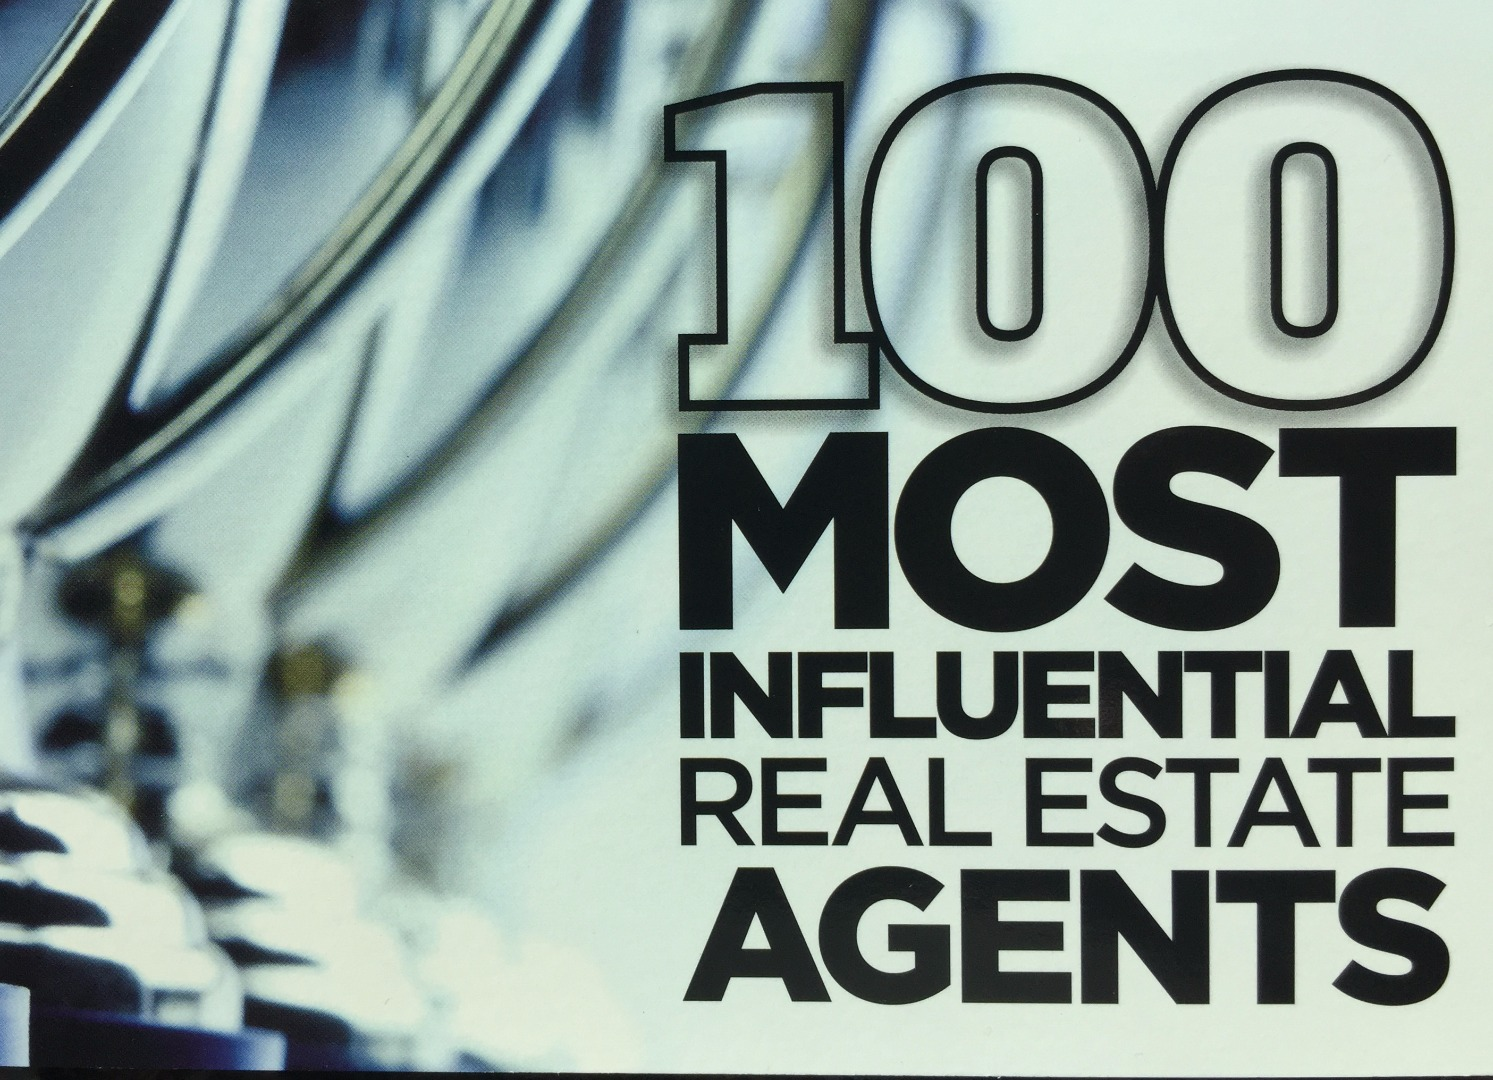 Alberto Cruz Named in the Top 100 Most Influential Real Estate Agents by Real Estate Executive Magazine 2016 and 2017